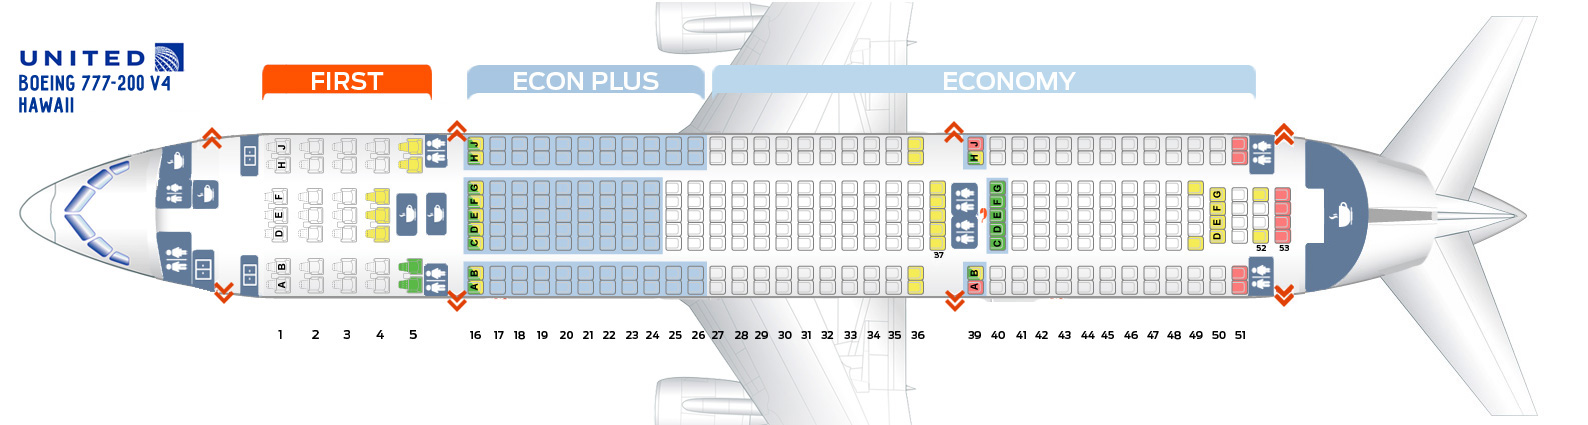 Seat_map_United_Airlines_Boeing_777_200_Hawaii_v4